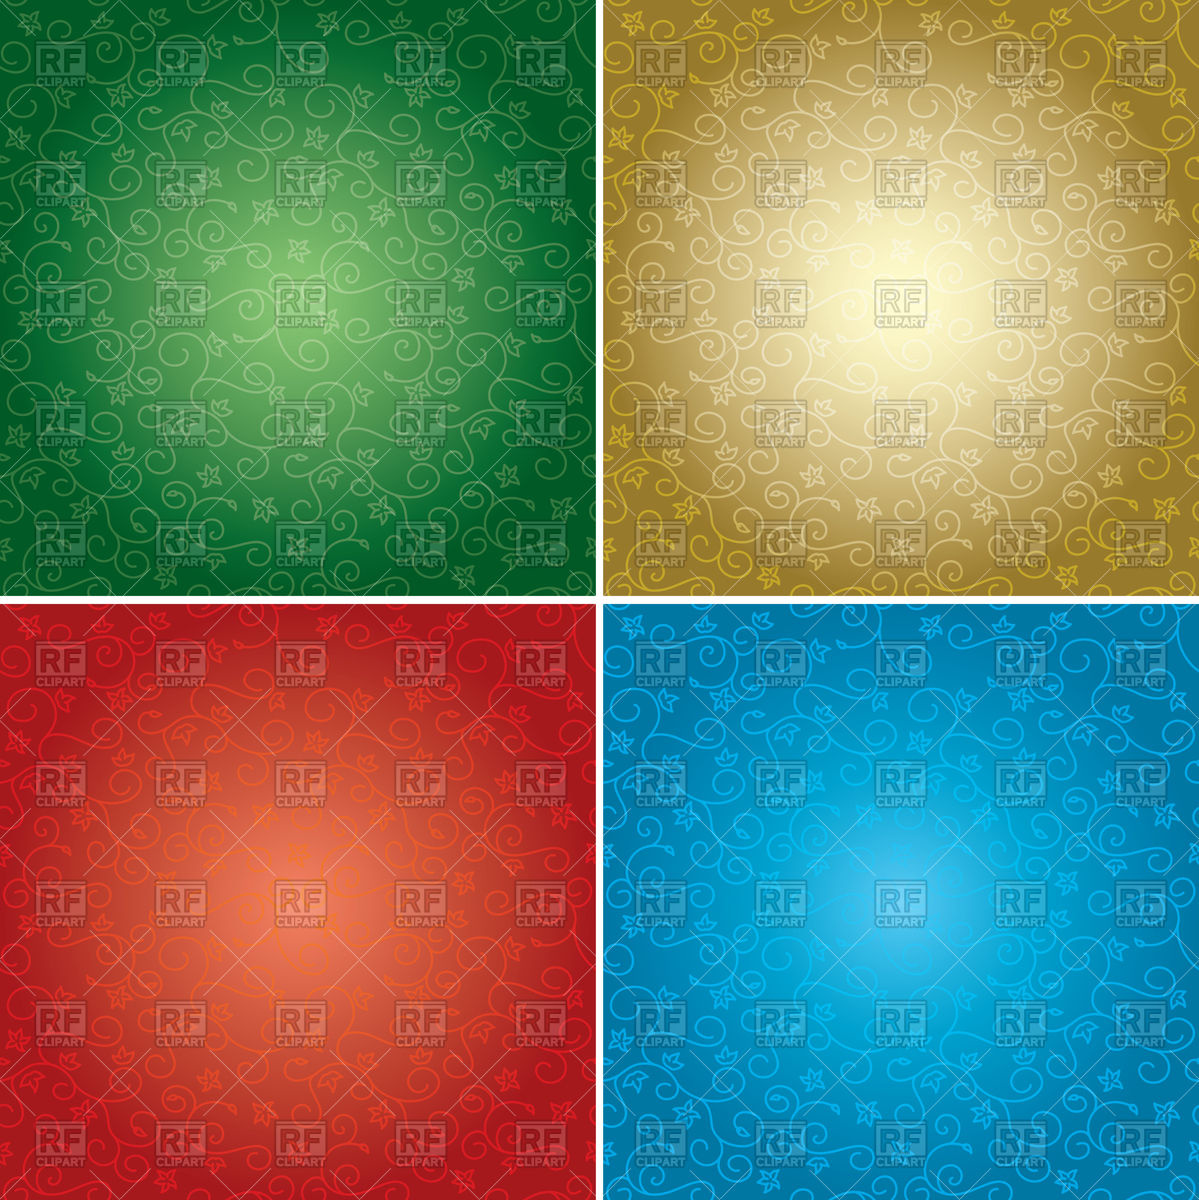 Floral backgrounds with radial gradient Vector Image #98675.